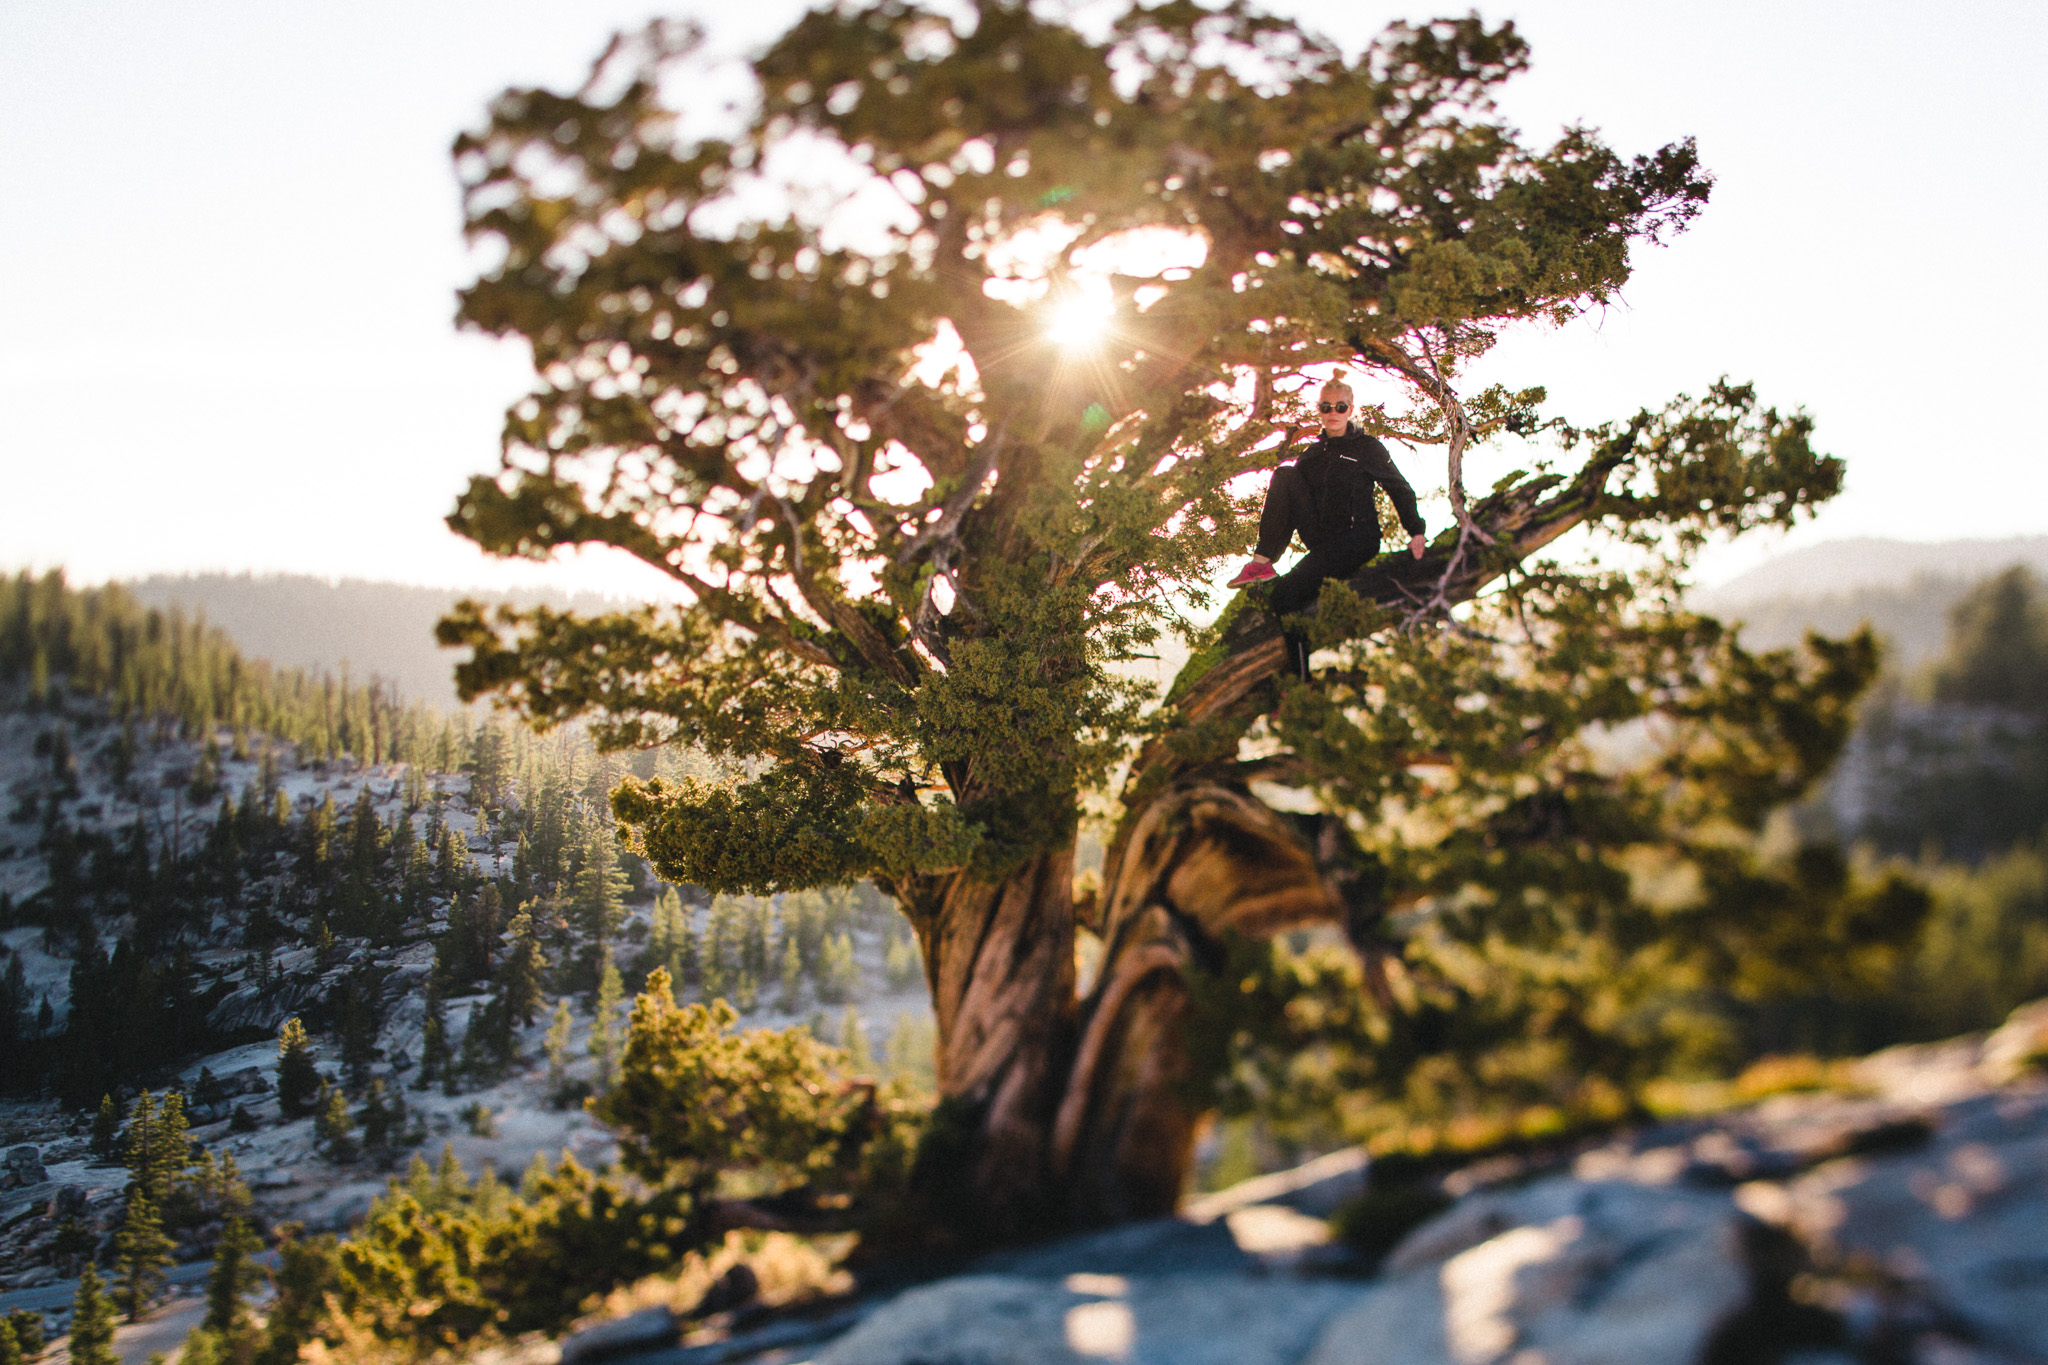 Girl-sitting-in-a-tree-backlit